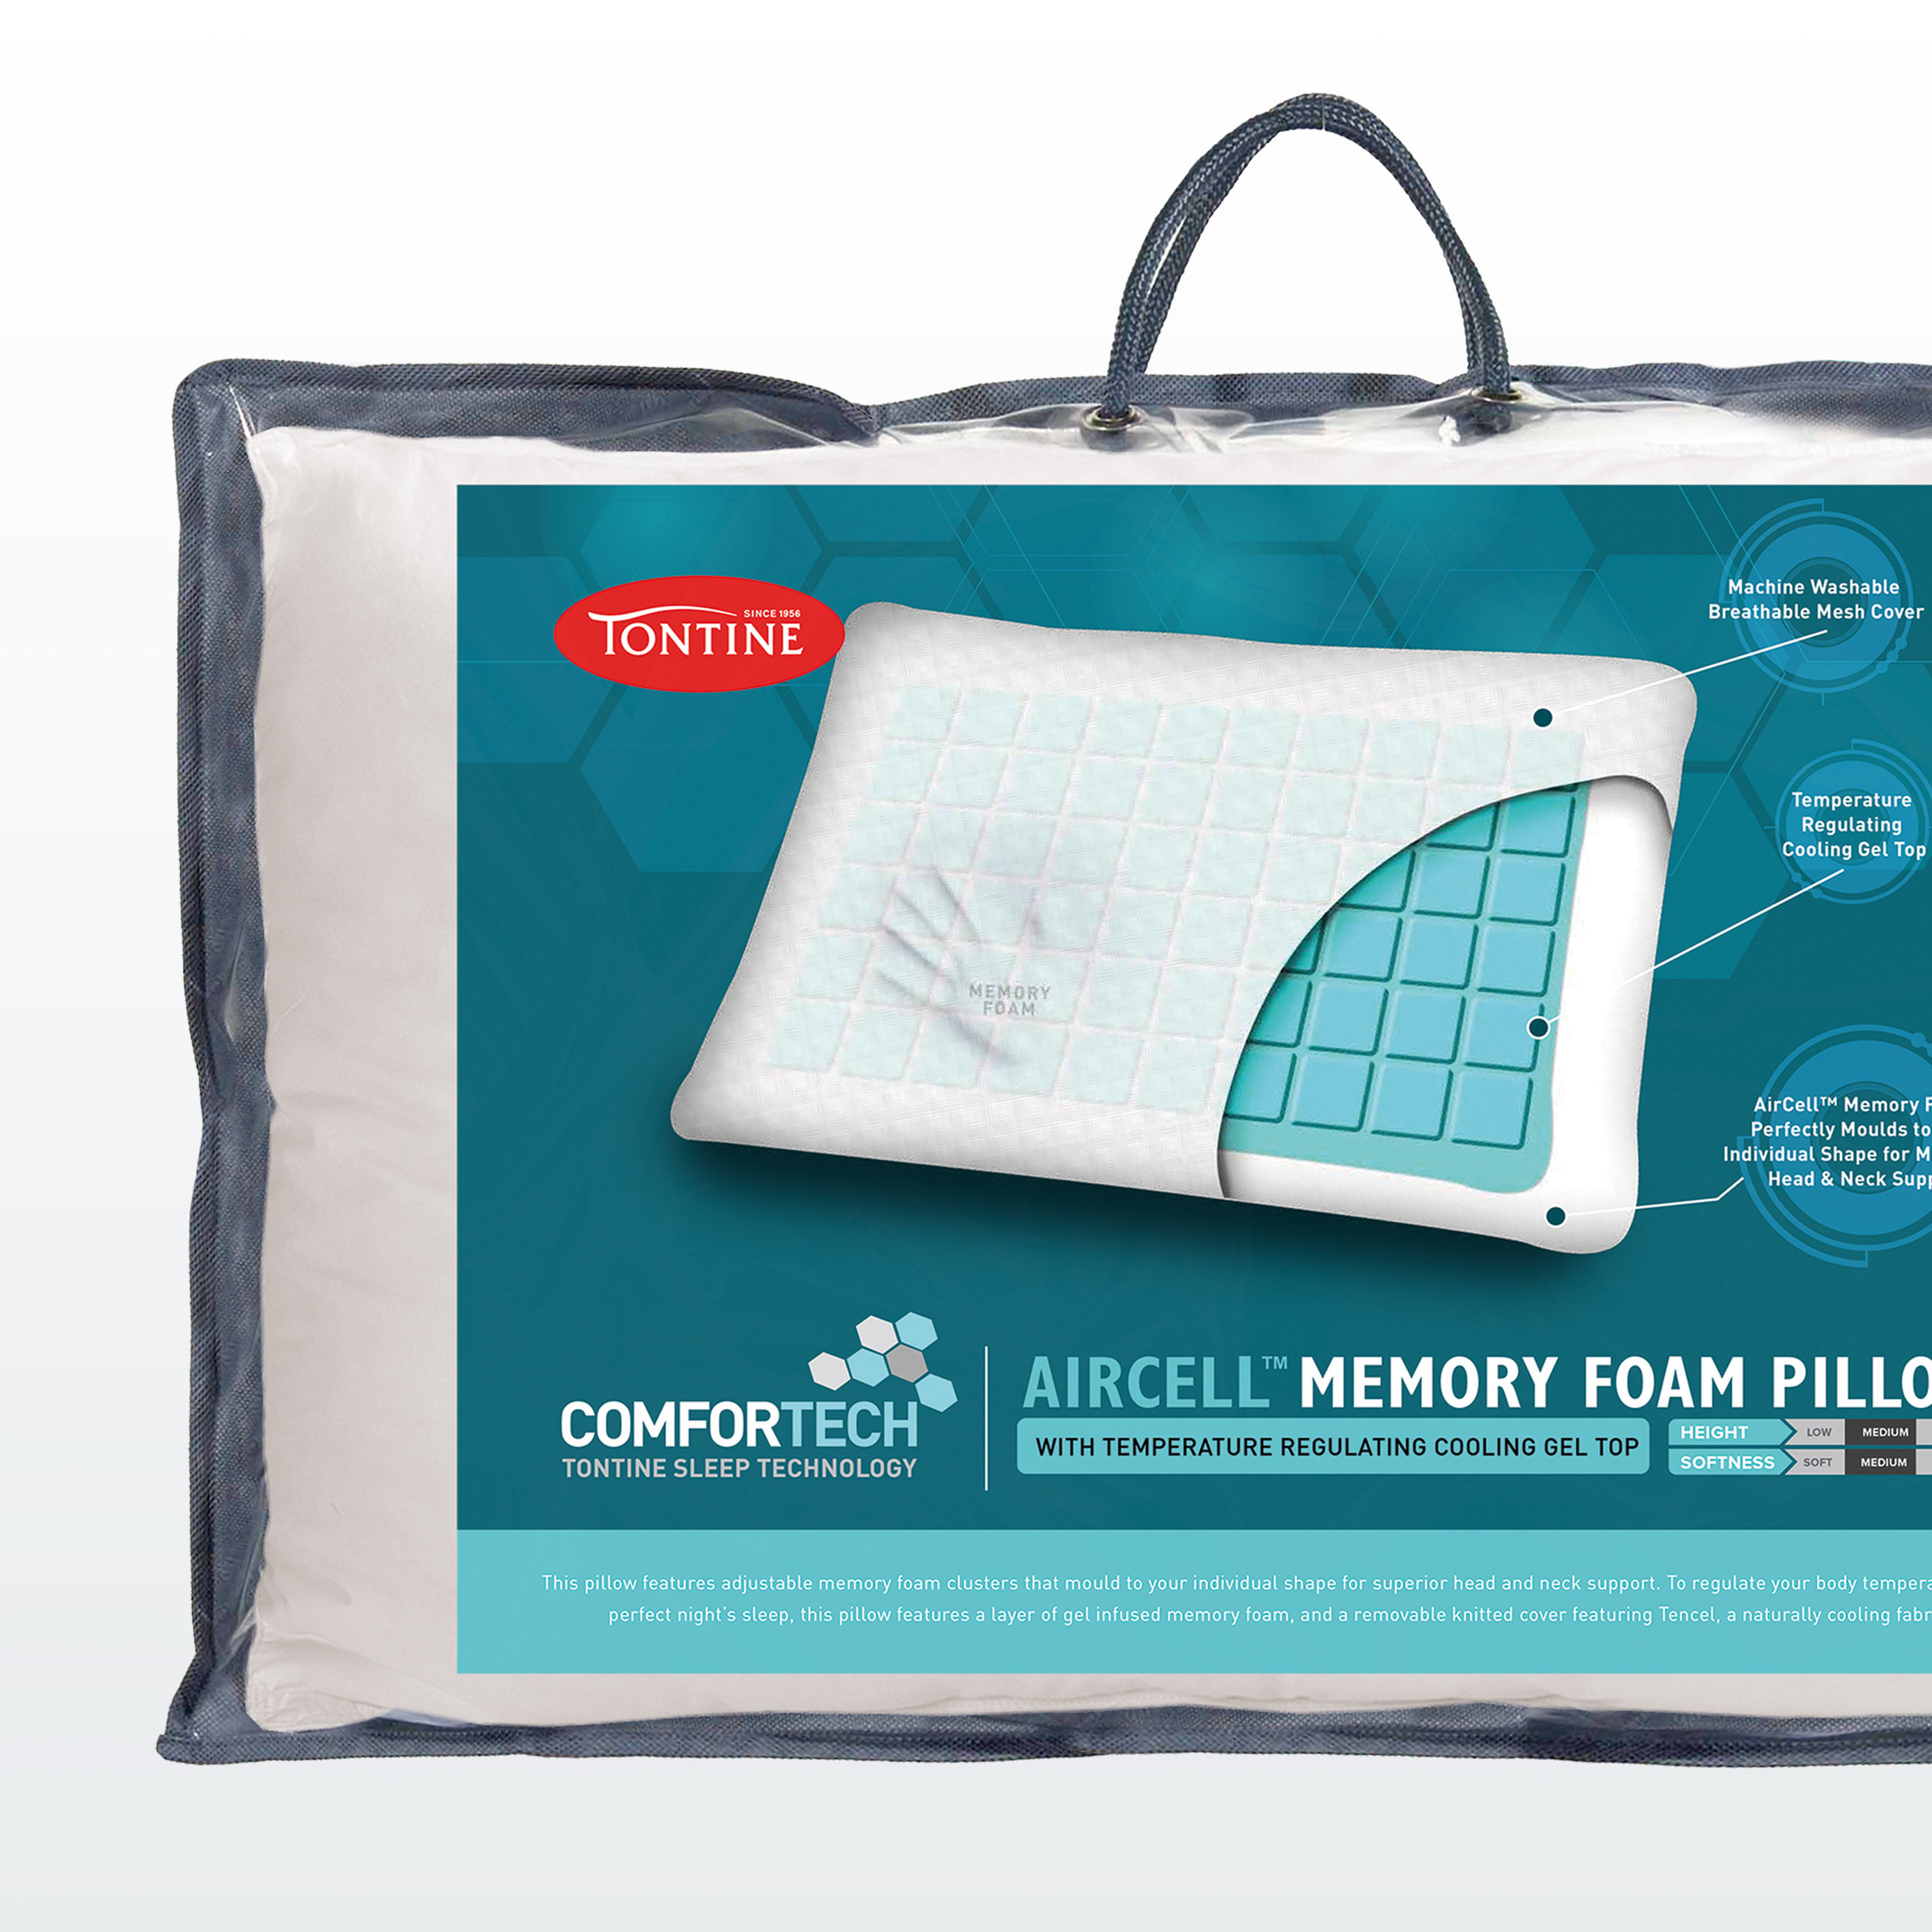 Tontine Comfortech packaging